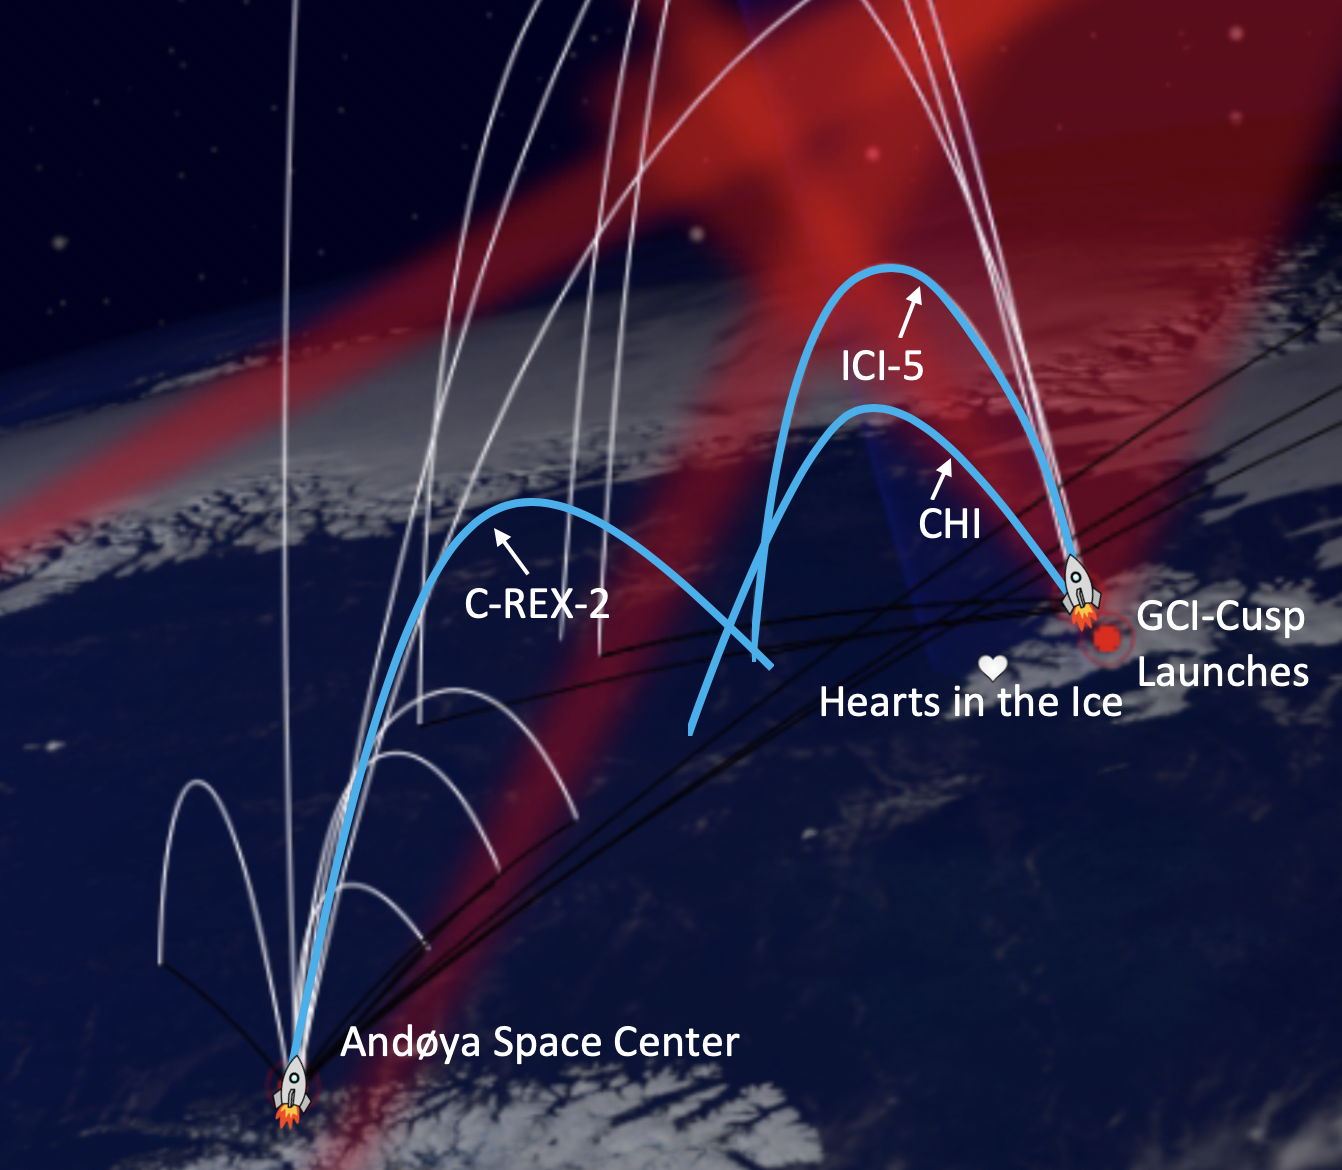 A map shows the trajectories of three rockets launched from mainland Norway and the northern island Svalbard. CHI, ICI-5, and C-REX-2 are labeled. East of C-REX-2's trajectory, on the southern end of Svalbard, is a label for Hearts in the Ice's location.